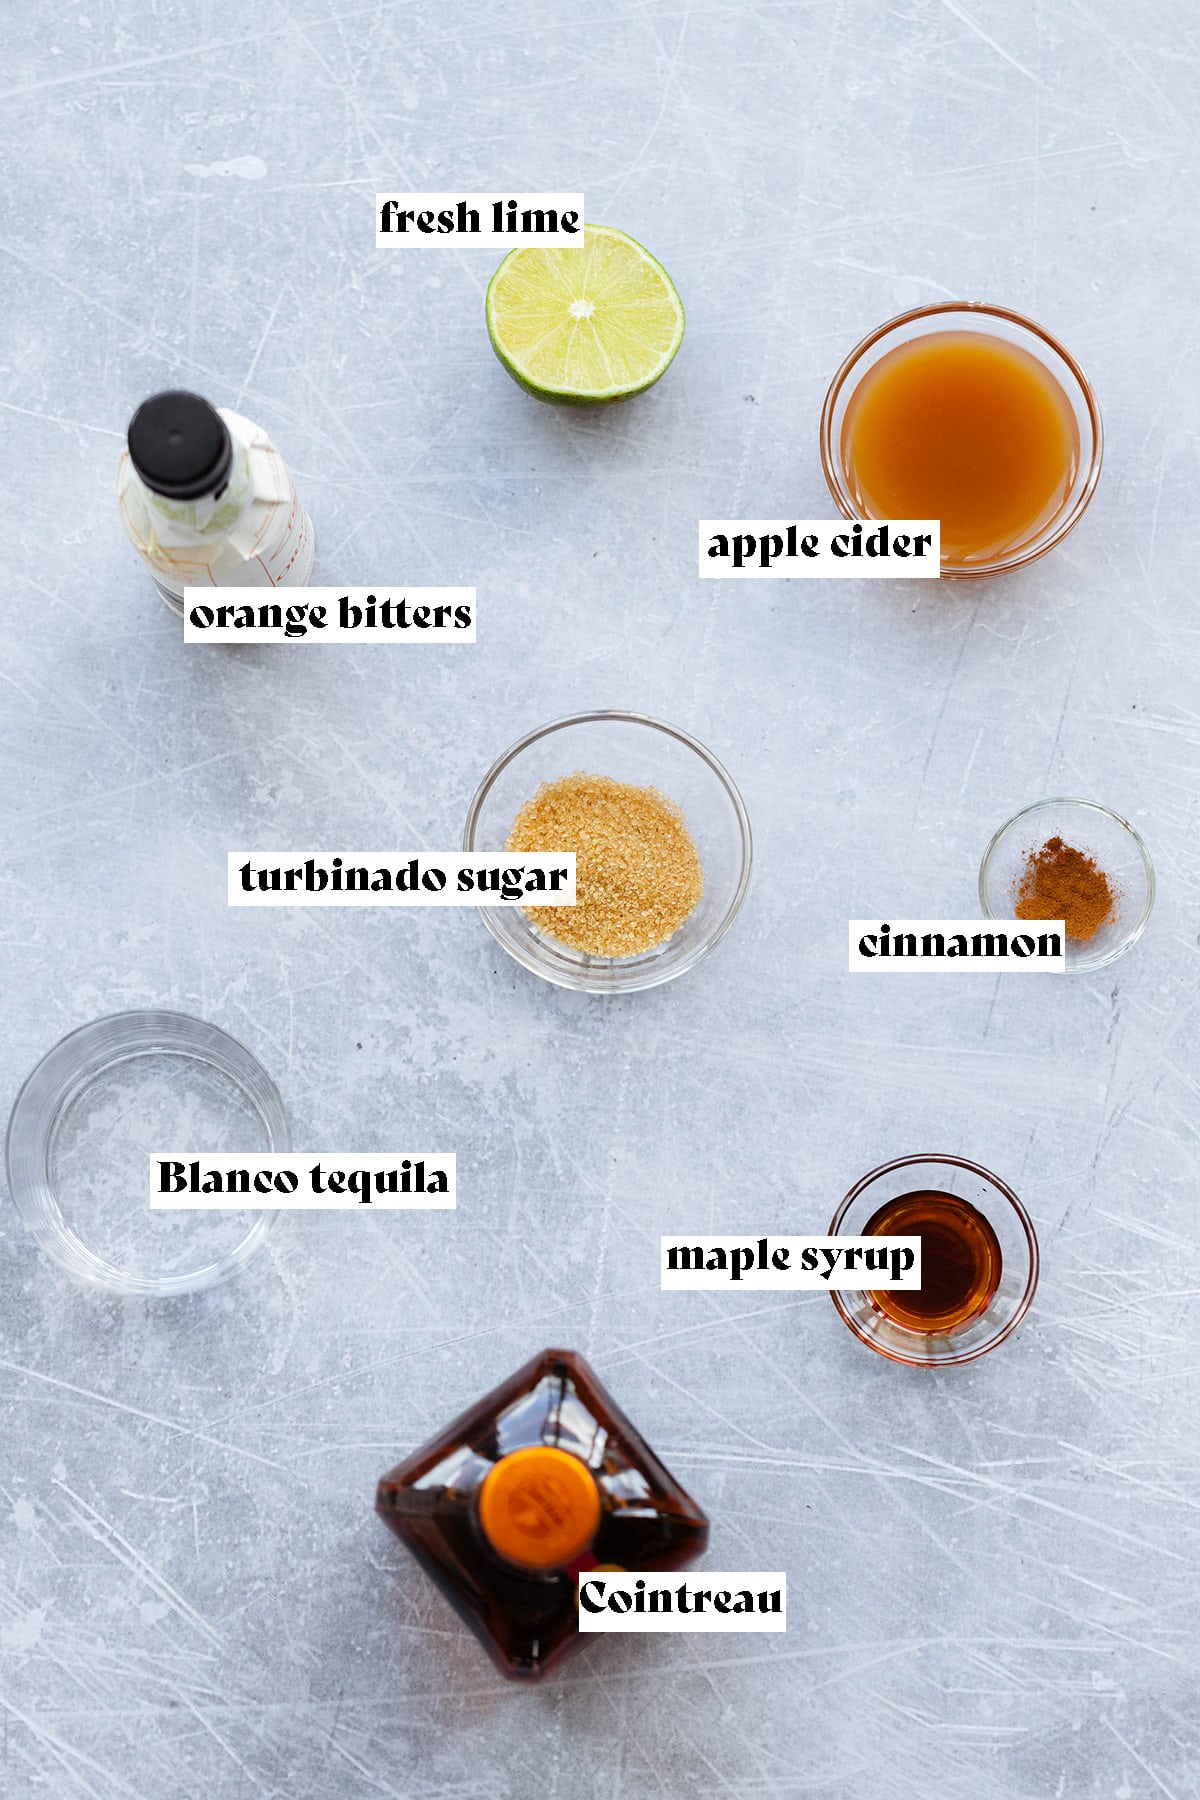 Ingredients for apple cider margarita being laid out on a light metal background.